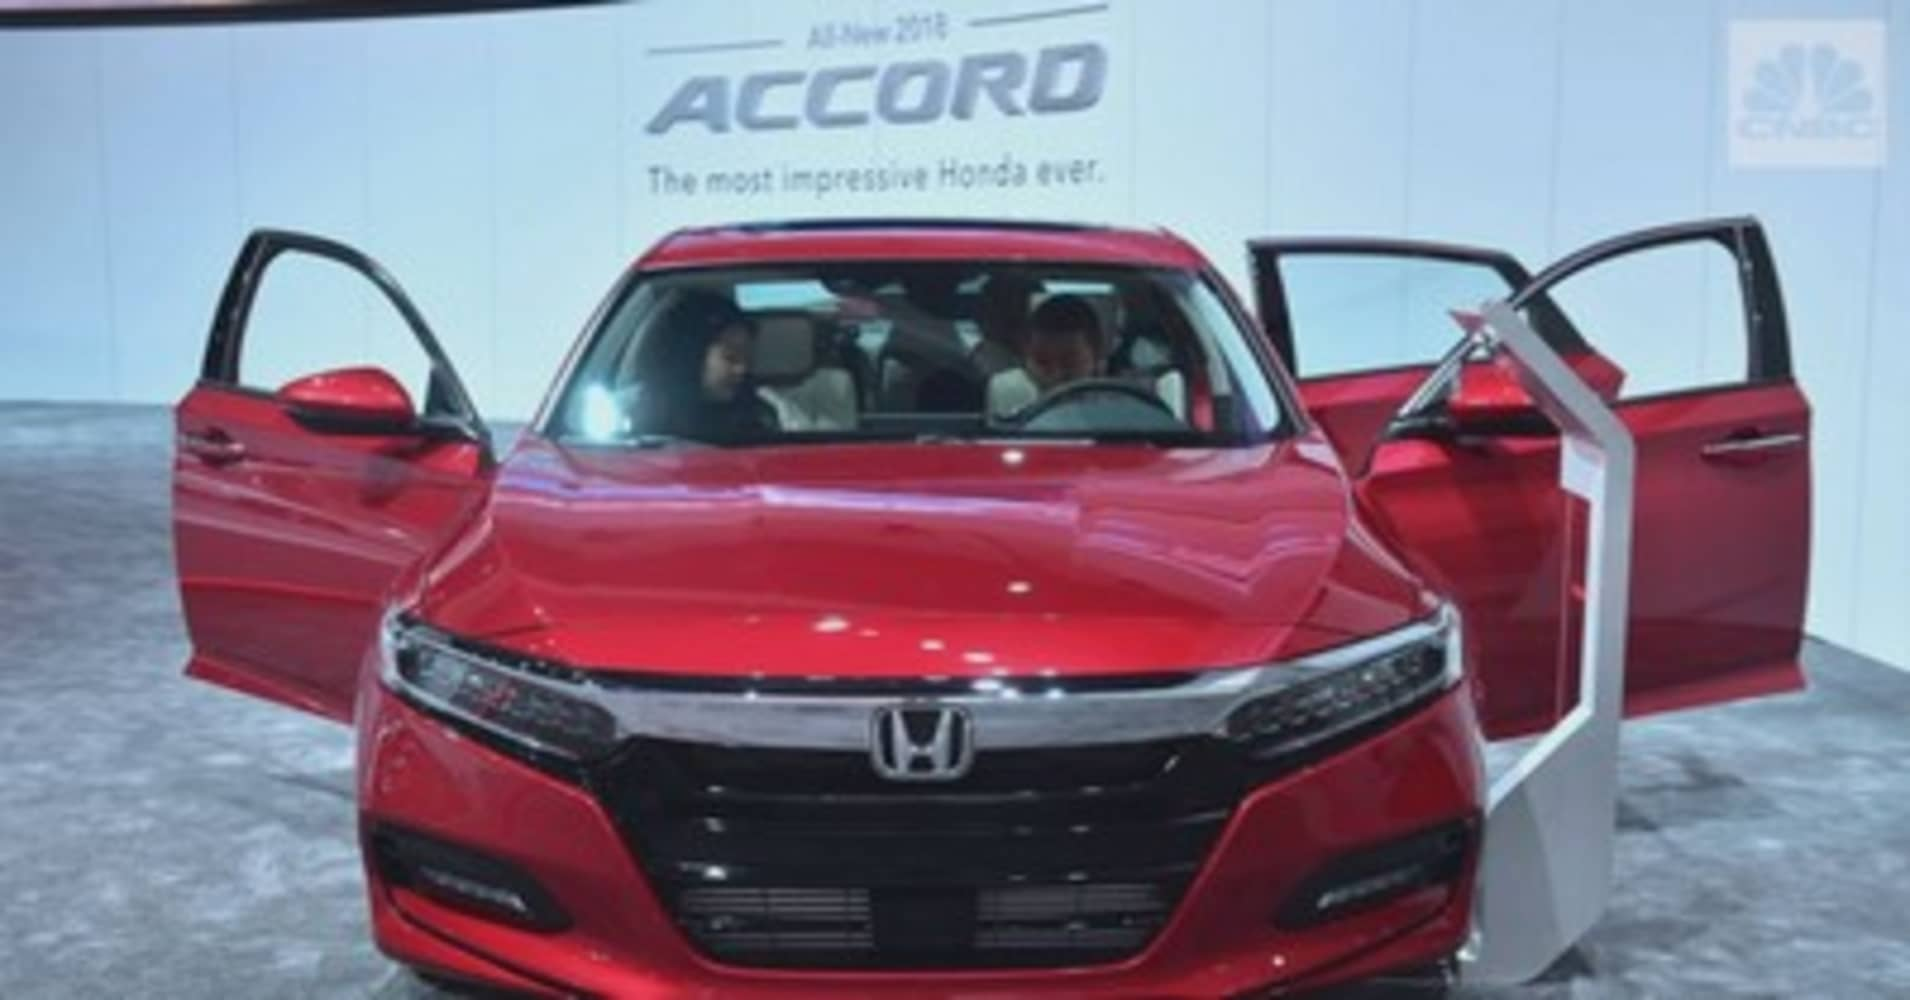 North American Car Of The Year Is Honda Accord - Accord vehicle